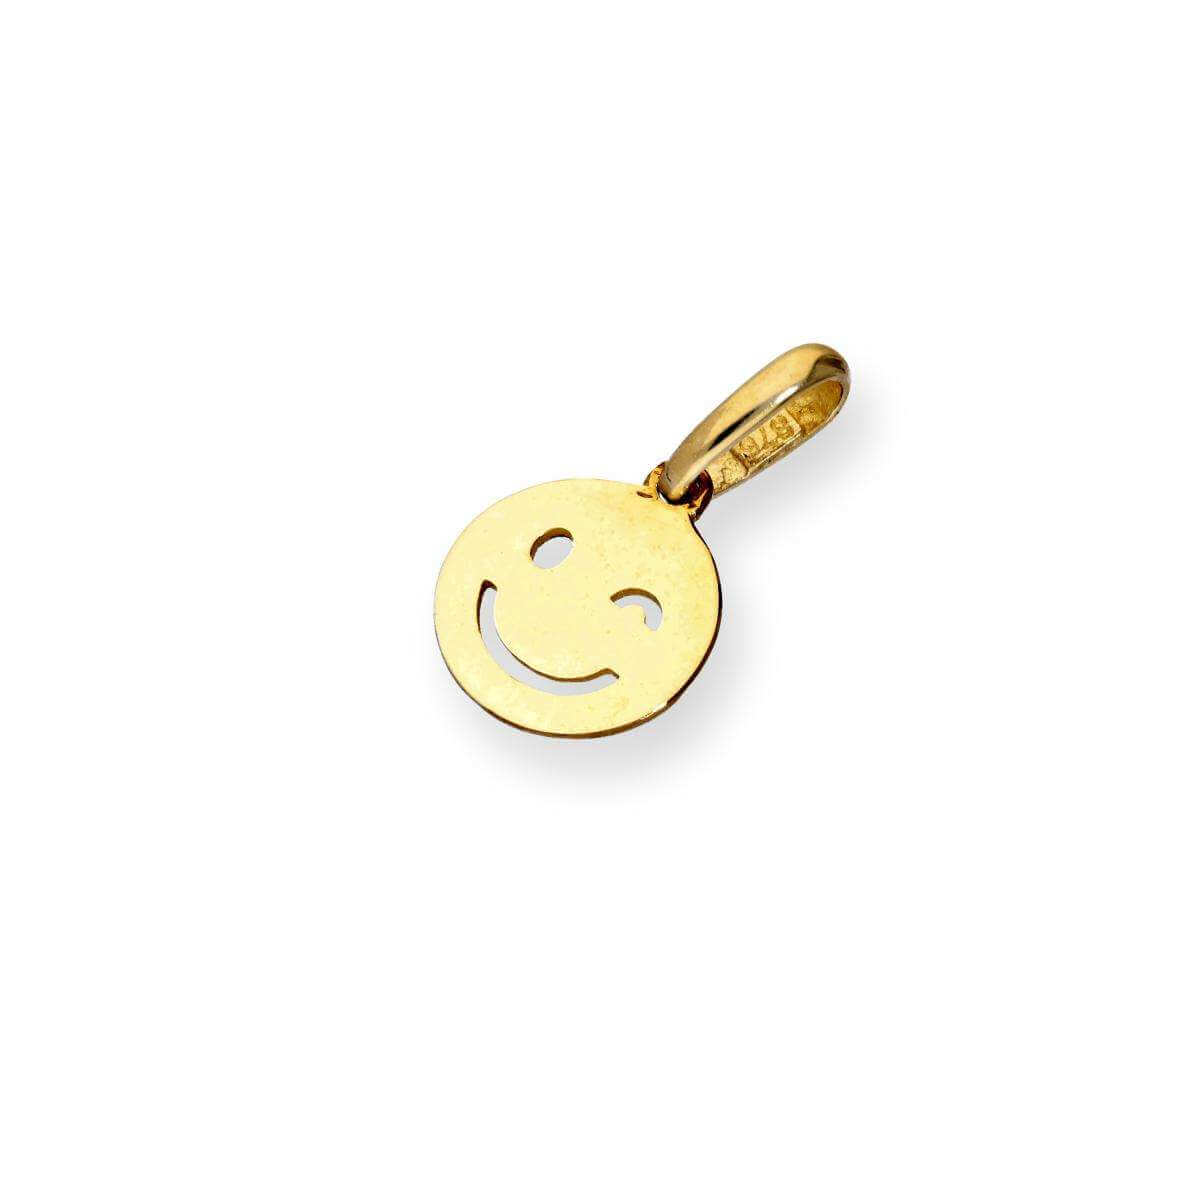 9ct Gold Winking Smiley Face Charm